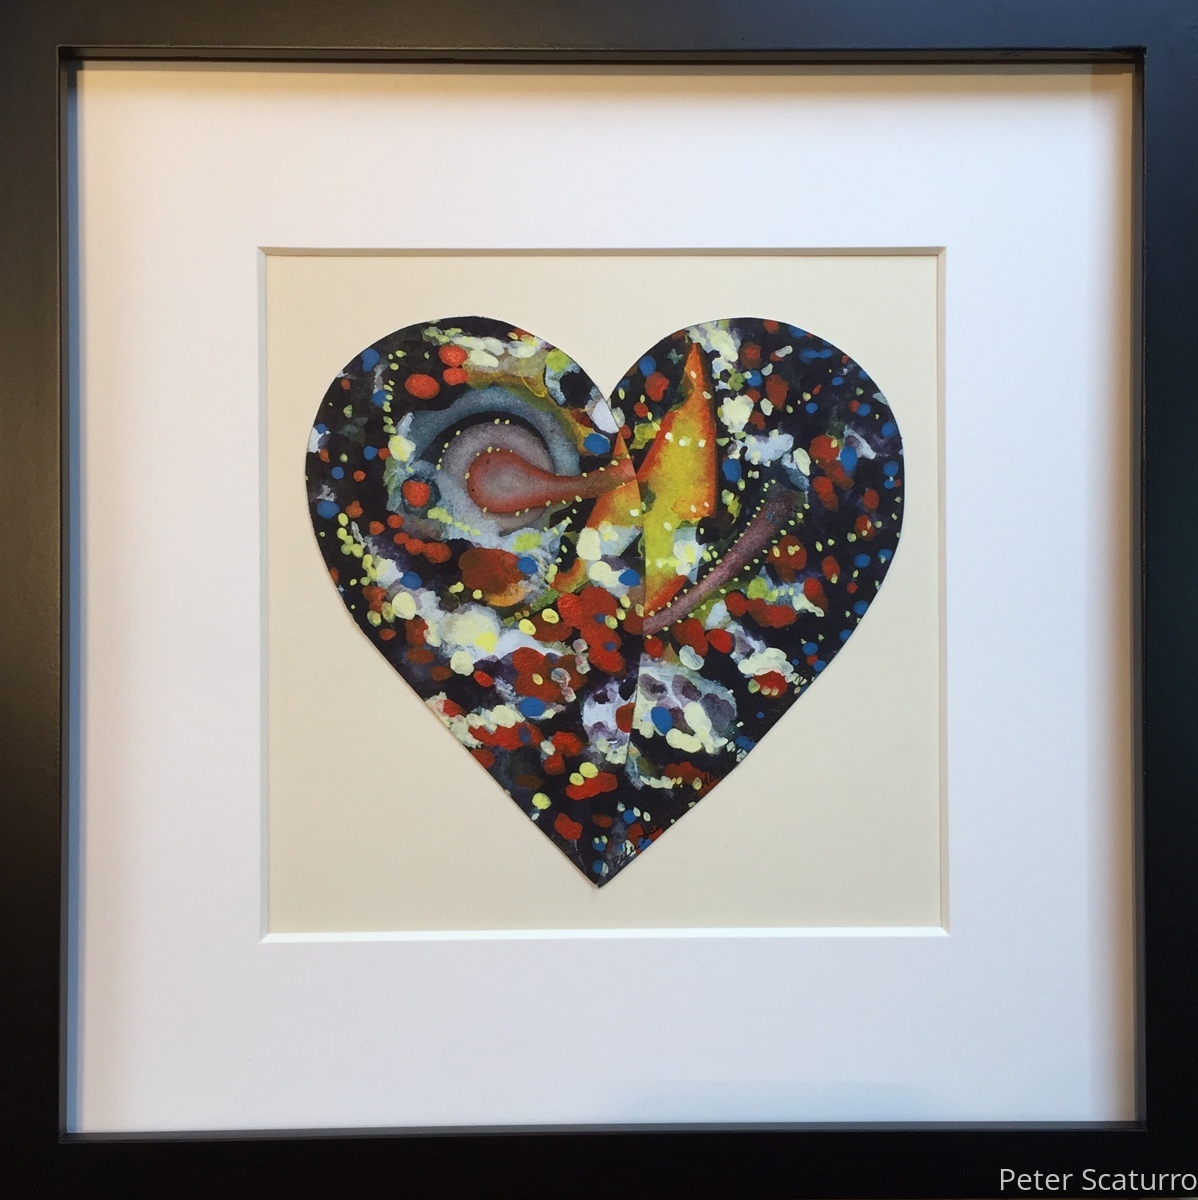 Heart Rising 23 - Framed - Donated to Women's March 2019 (large view)